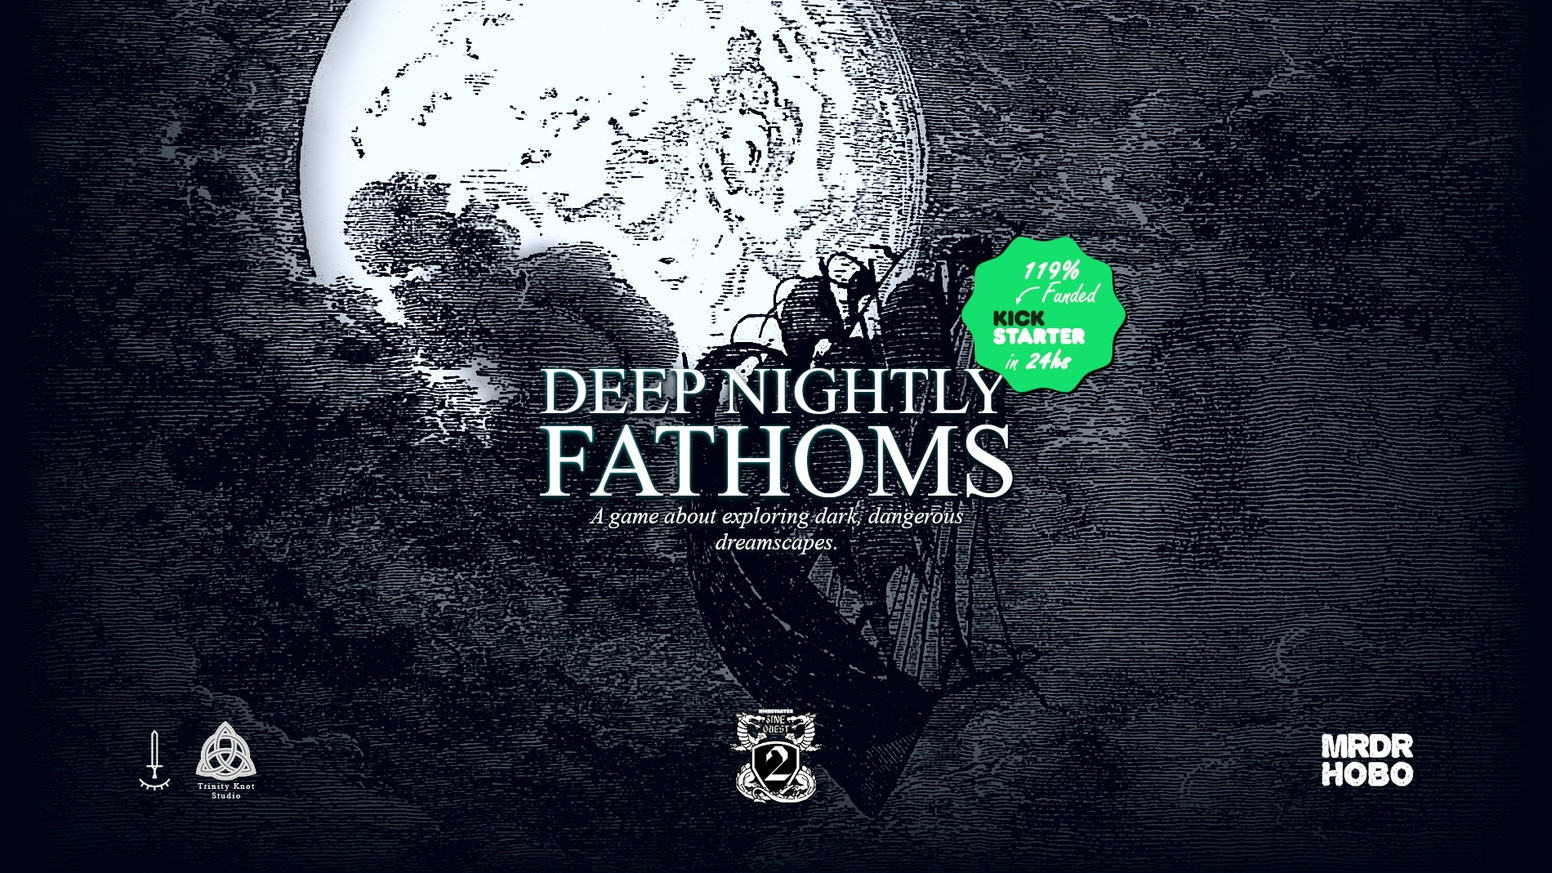 Deep Nightly Fathoms is an RPG exploring dark dreamscapes inspired by the beautiful engravings of XIX century artist Gustave Doré.